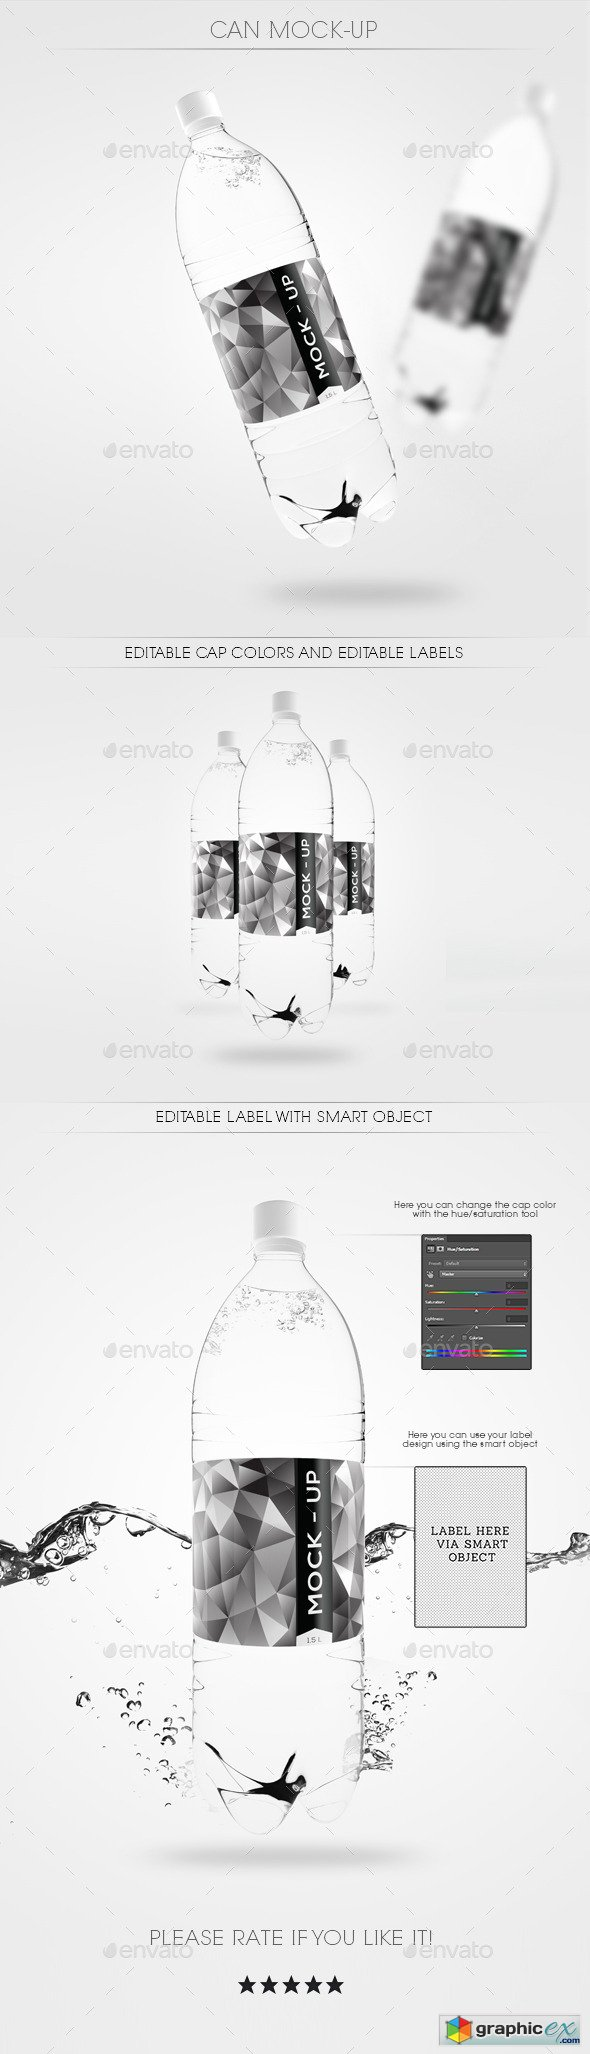 Water Bottle Mock Up